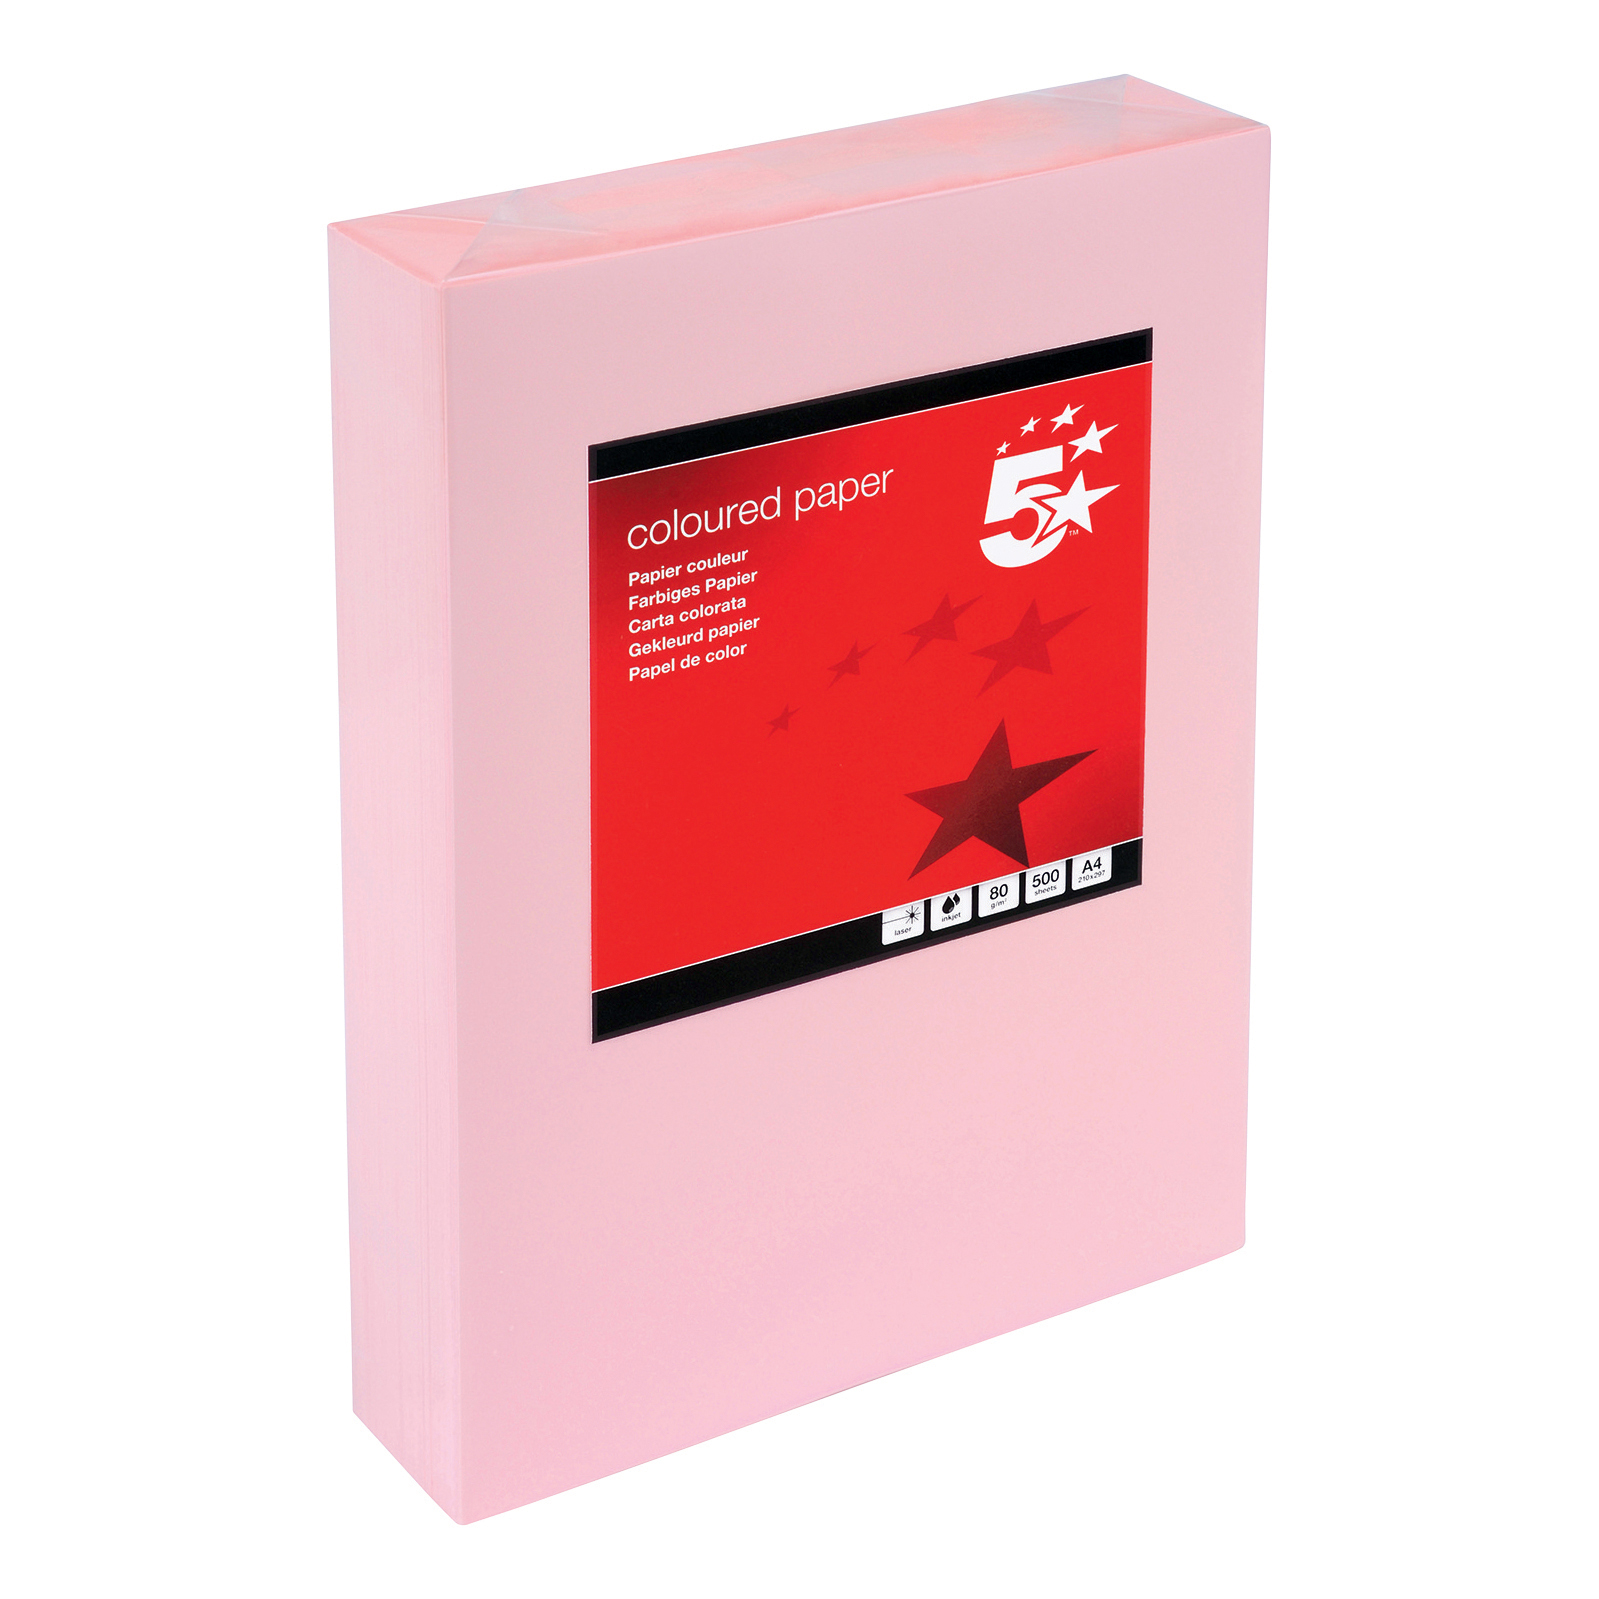 5 Star Coloured Copier Paper Multifunctional Ream-Wrapped 80gsm A4 Pink [500 Sheets]